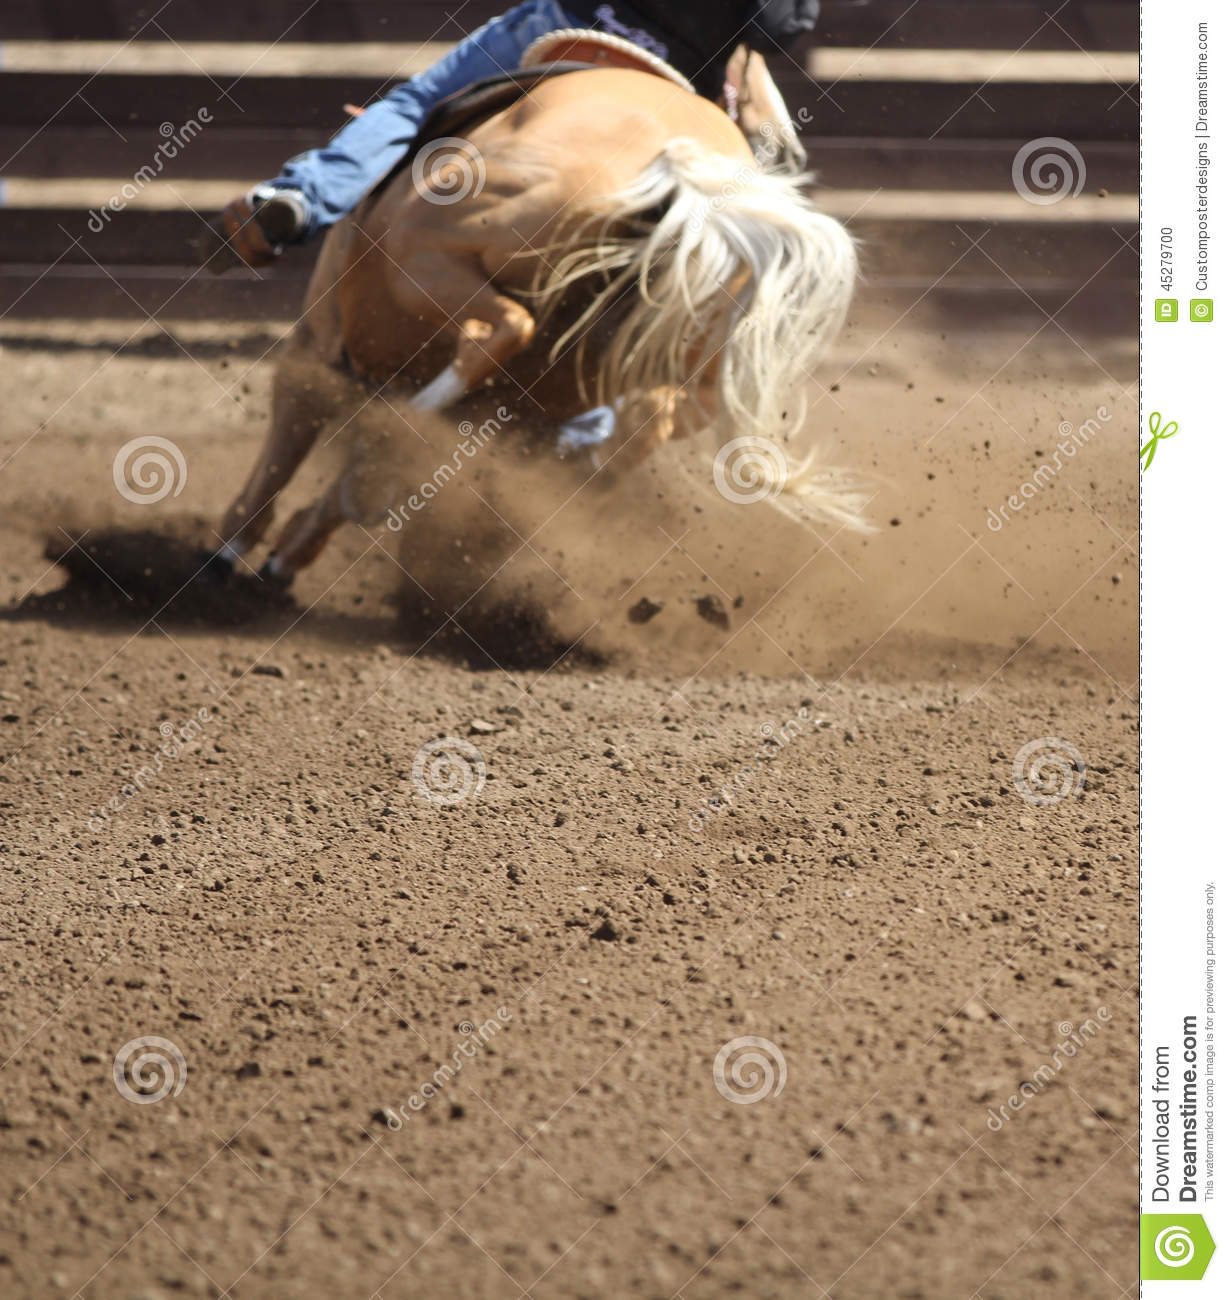 Download A Close Up View Of A Horse Galloping. Stock Photo - Image of area, brown: 45279700